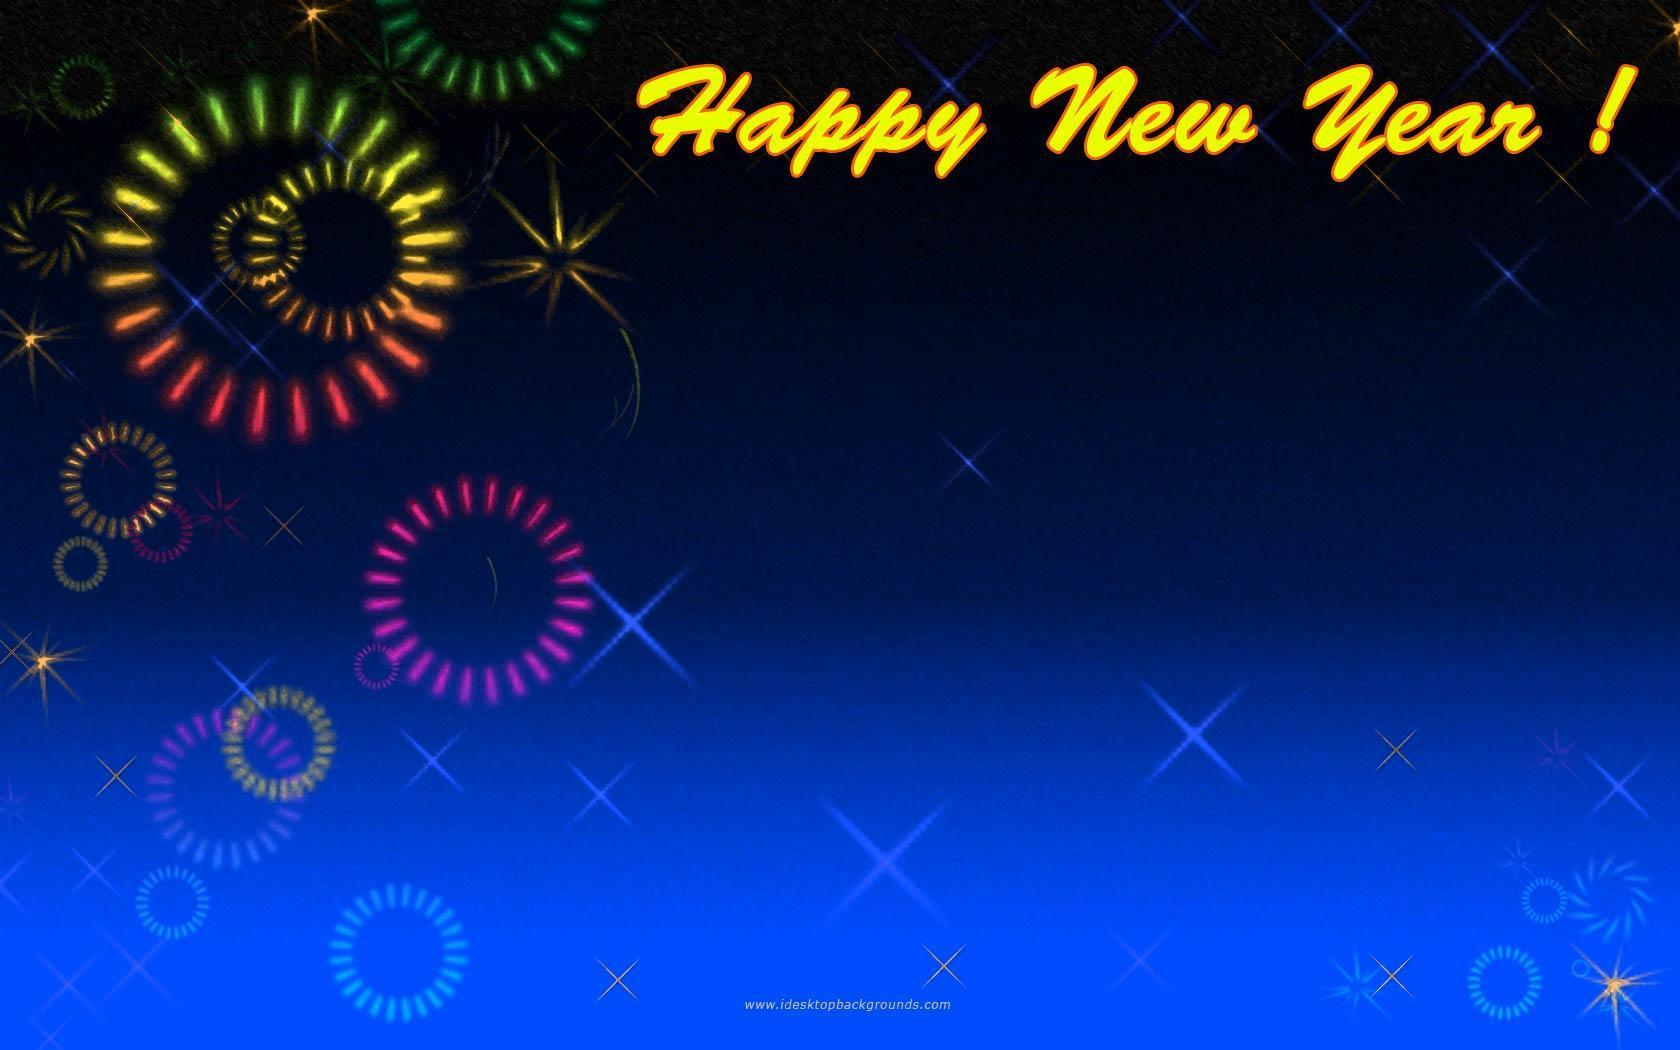 Happy New Year Backgrounds - Wallpaper Cave